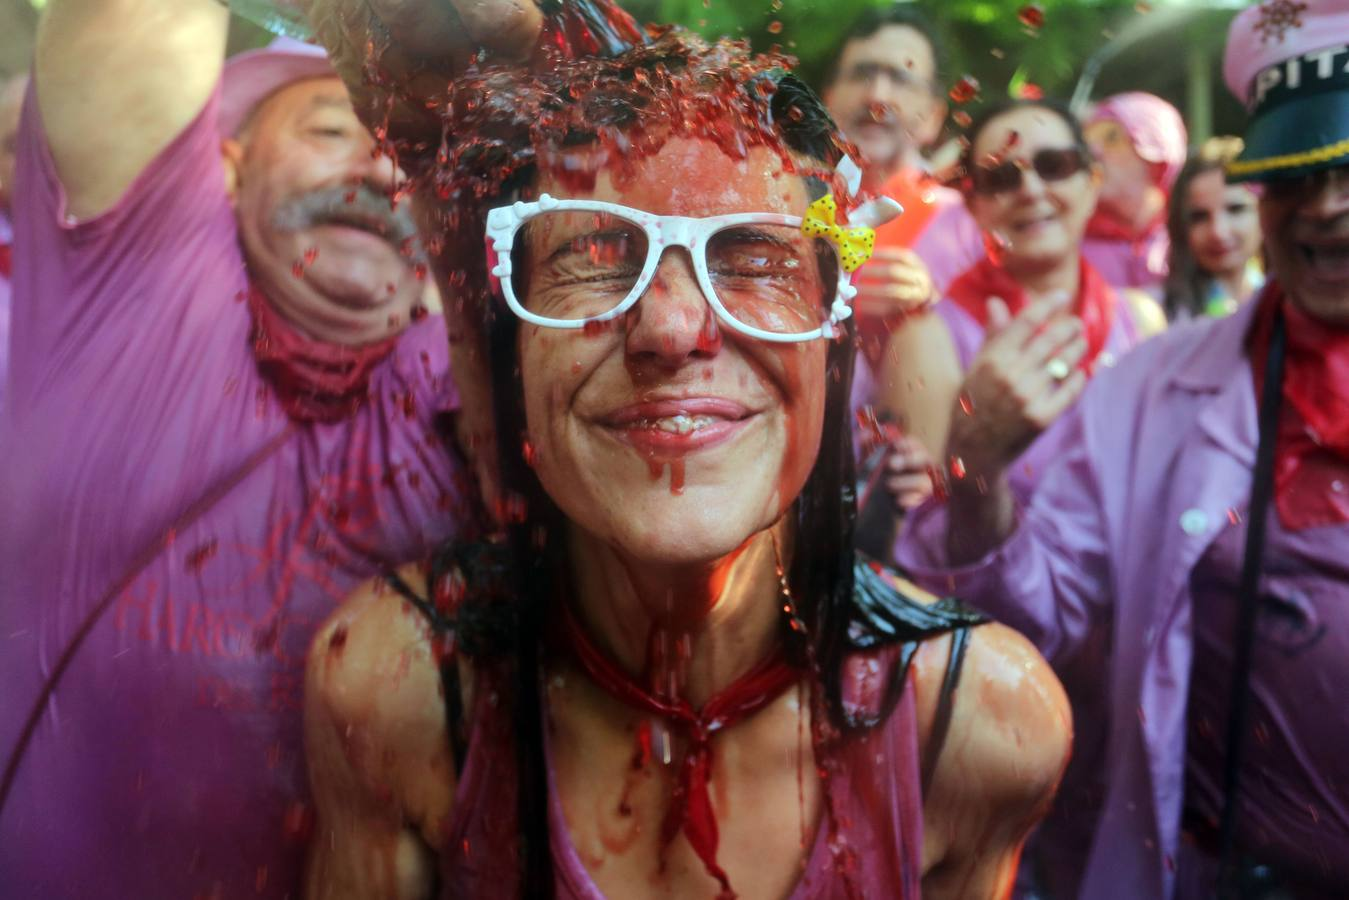 "TOPSHOTS A man pours red wine on a girl's head during the""Batalla del Vino"" (Battle of Wine) in Haro, on June 29, 2015. Every year thousands of locals and tourists climb a mountain in the northern Spanish province of La Rioja to celebrate St. Peter's day covering each other in red wine while tanker trucks filled with wine distribute the alcoholic beverage to water pistols, back mounted spraying devices, buckets which are randomly poured on heads and into any other available container. More than nine thousand people threw around 130,000 litres of wine during this year's Haro Wine Festival, according to local media. AFP PHOTO / CESAR MANSO"